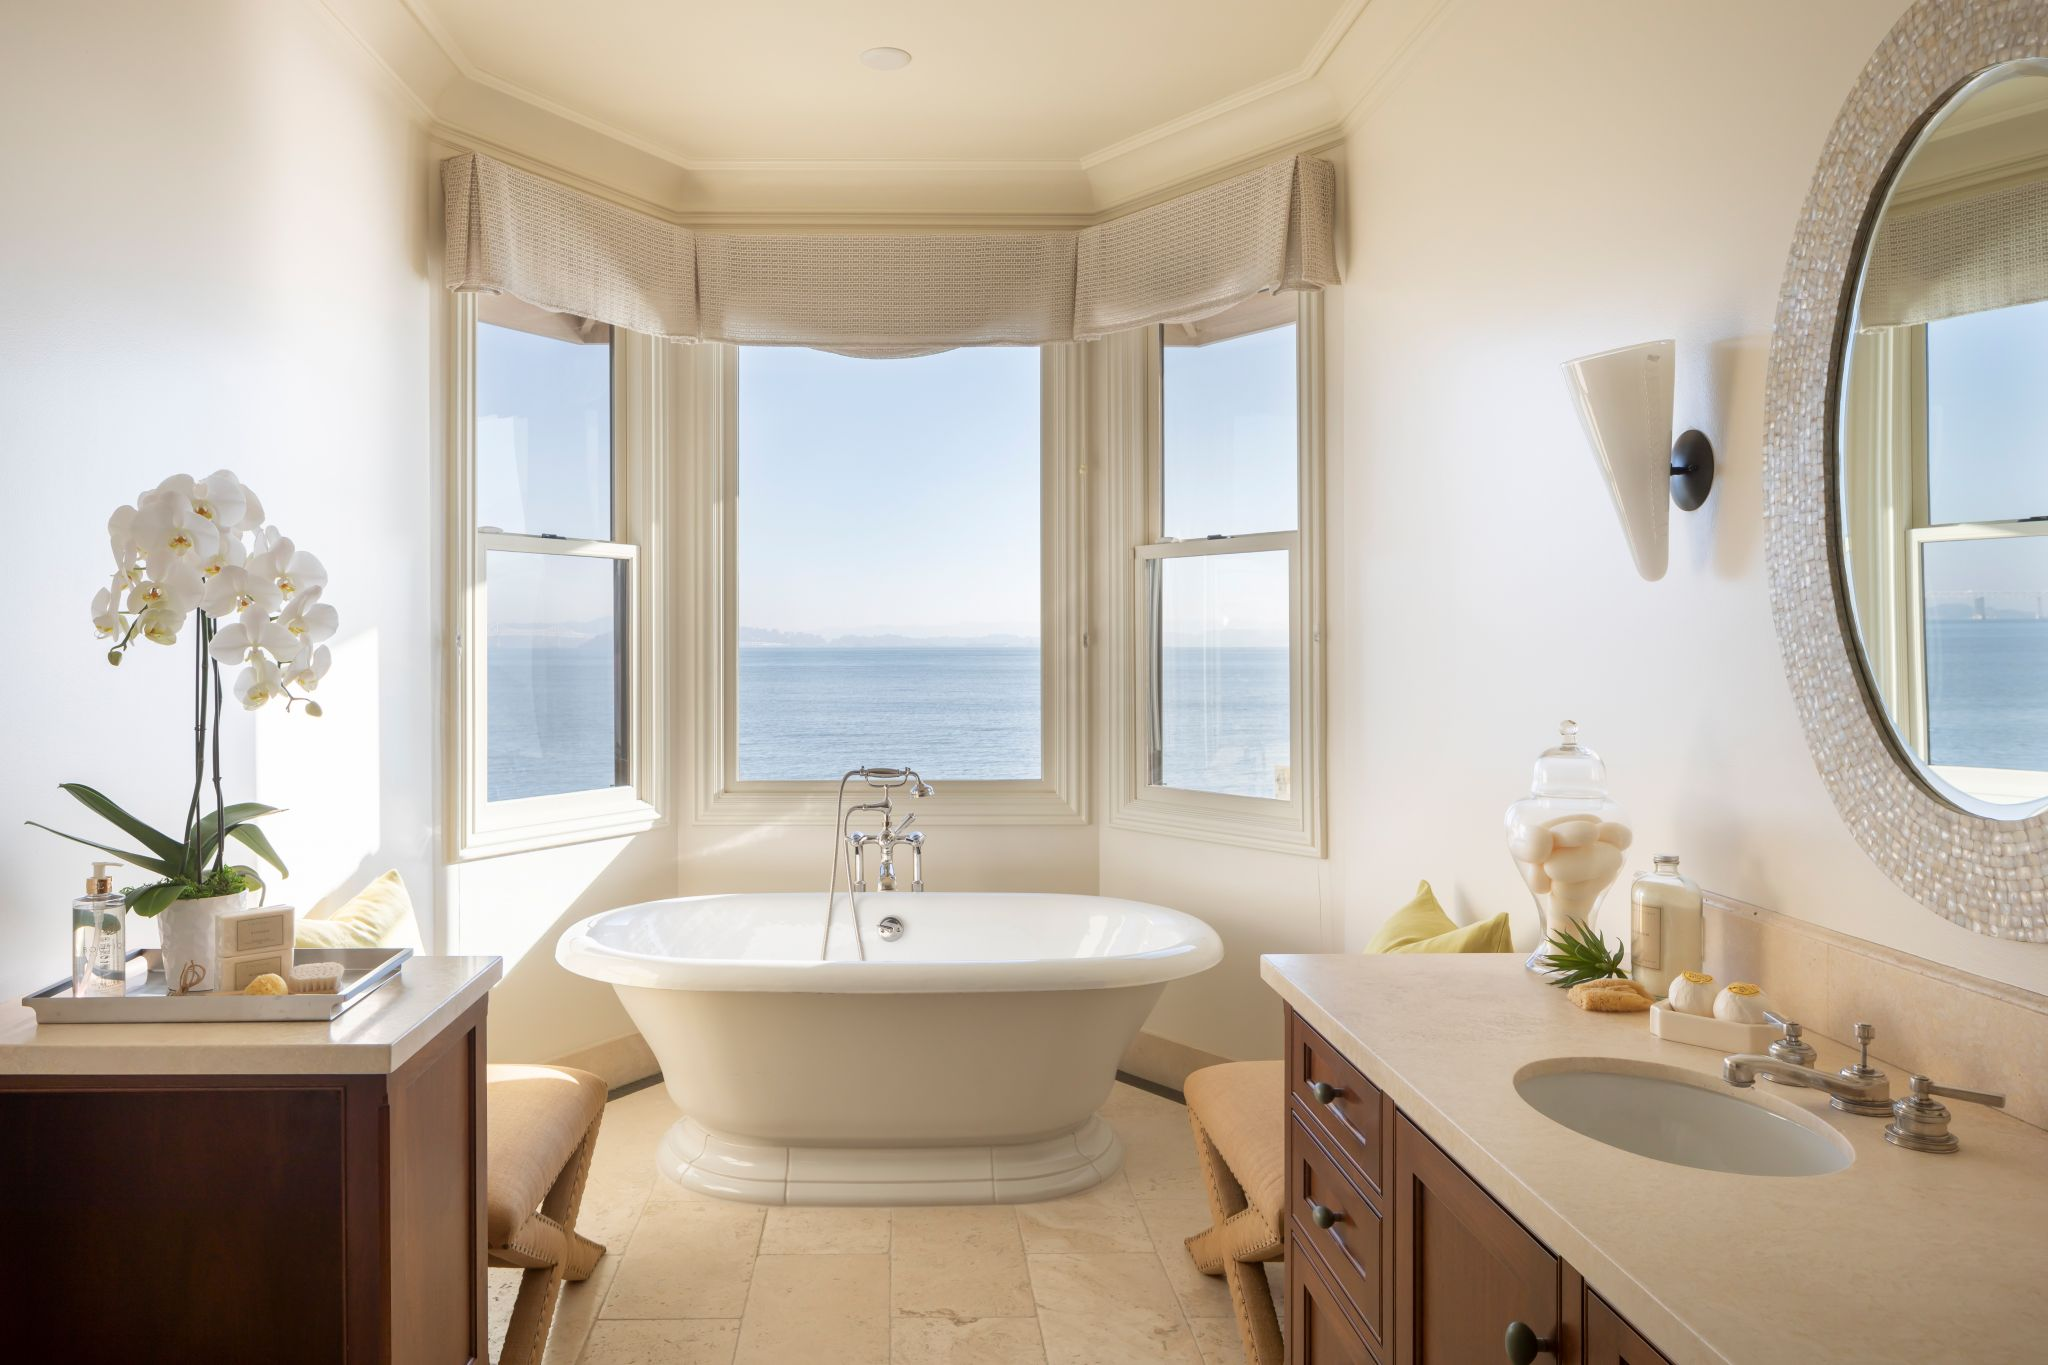 The primary bathroom includes a bathtub that is framed by windows overlooking the water.